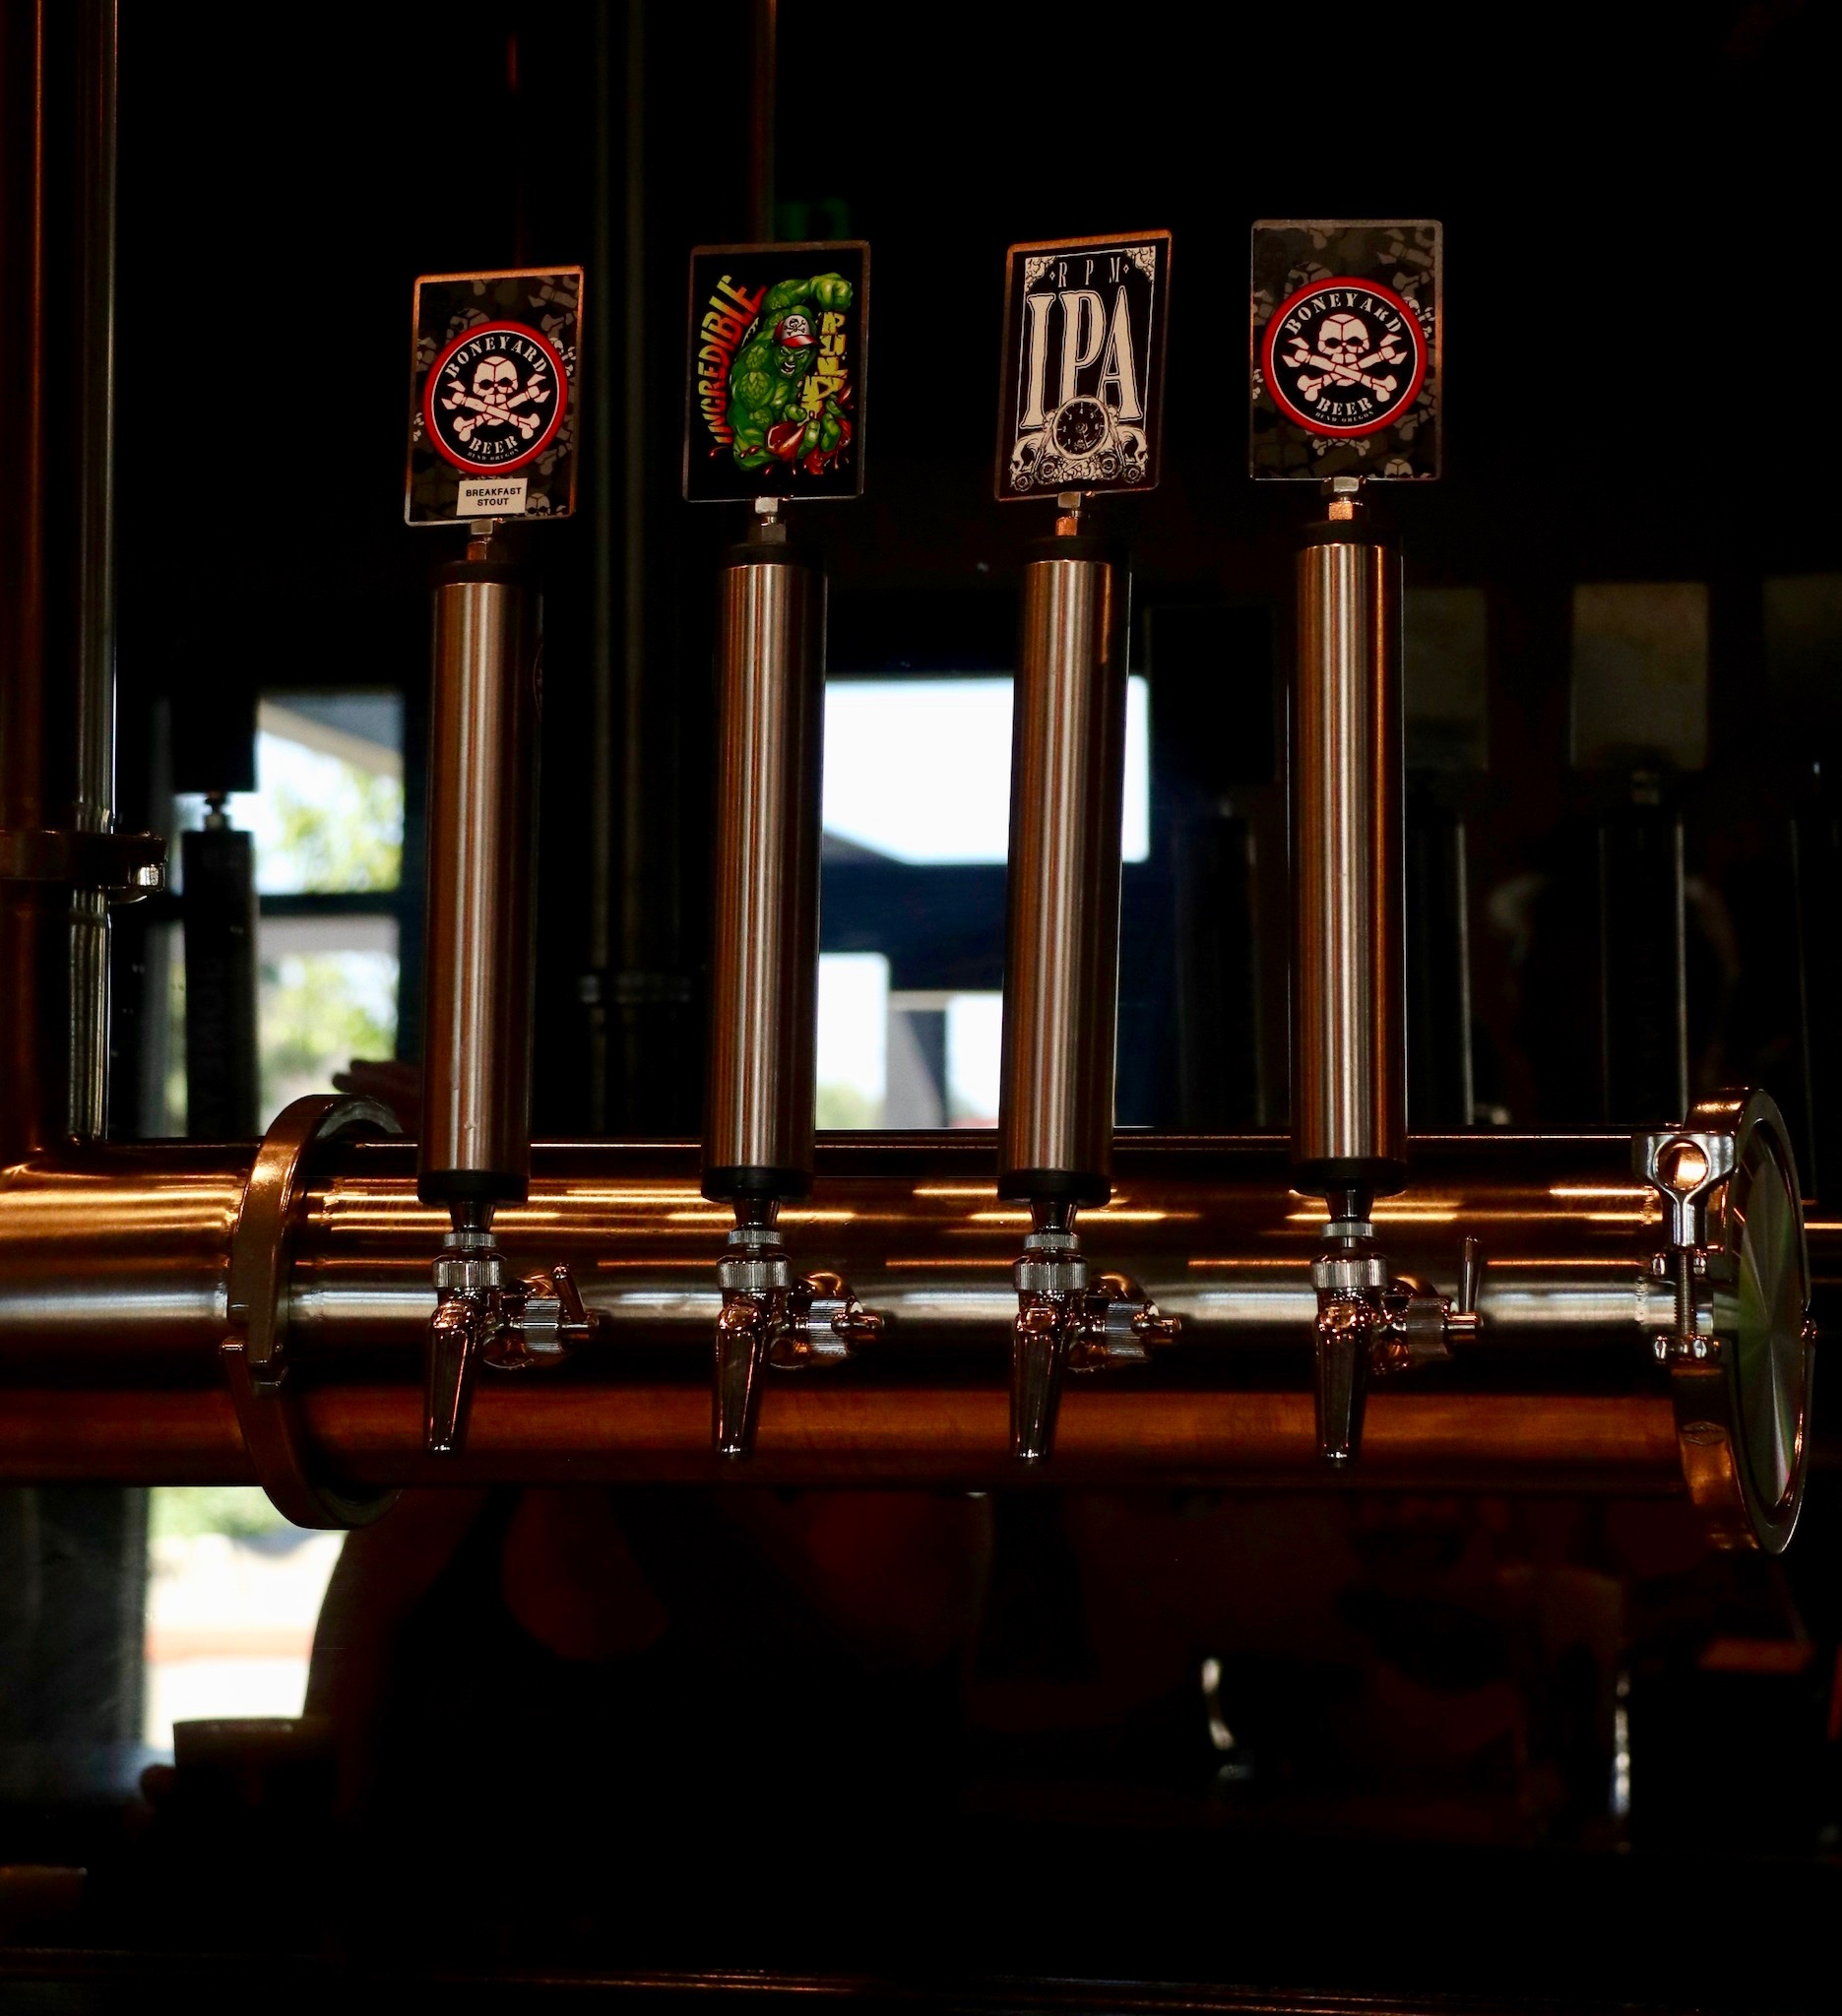 Some of the taps at the new Boneyard Pub in Bend, Oregon. (photo by Cat Stelzer)